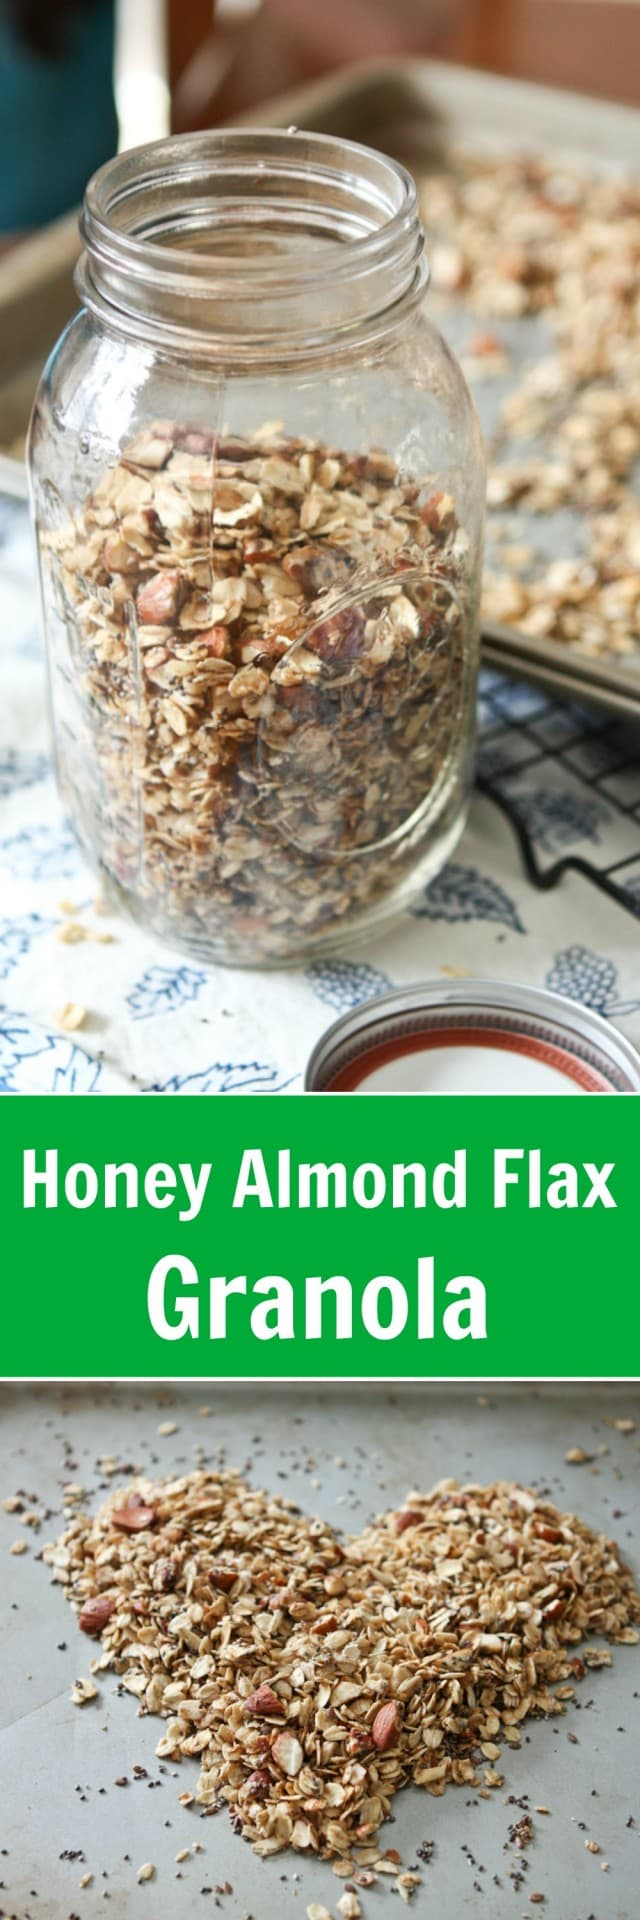 Honey Almond Flax Granola - one of my family's favorite granola recipes!